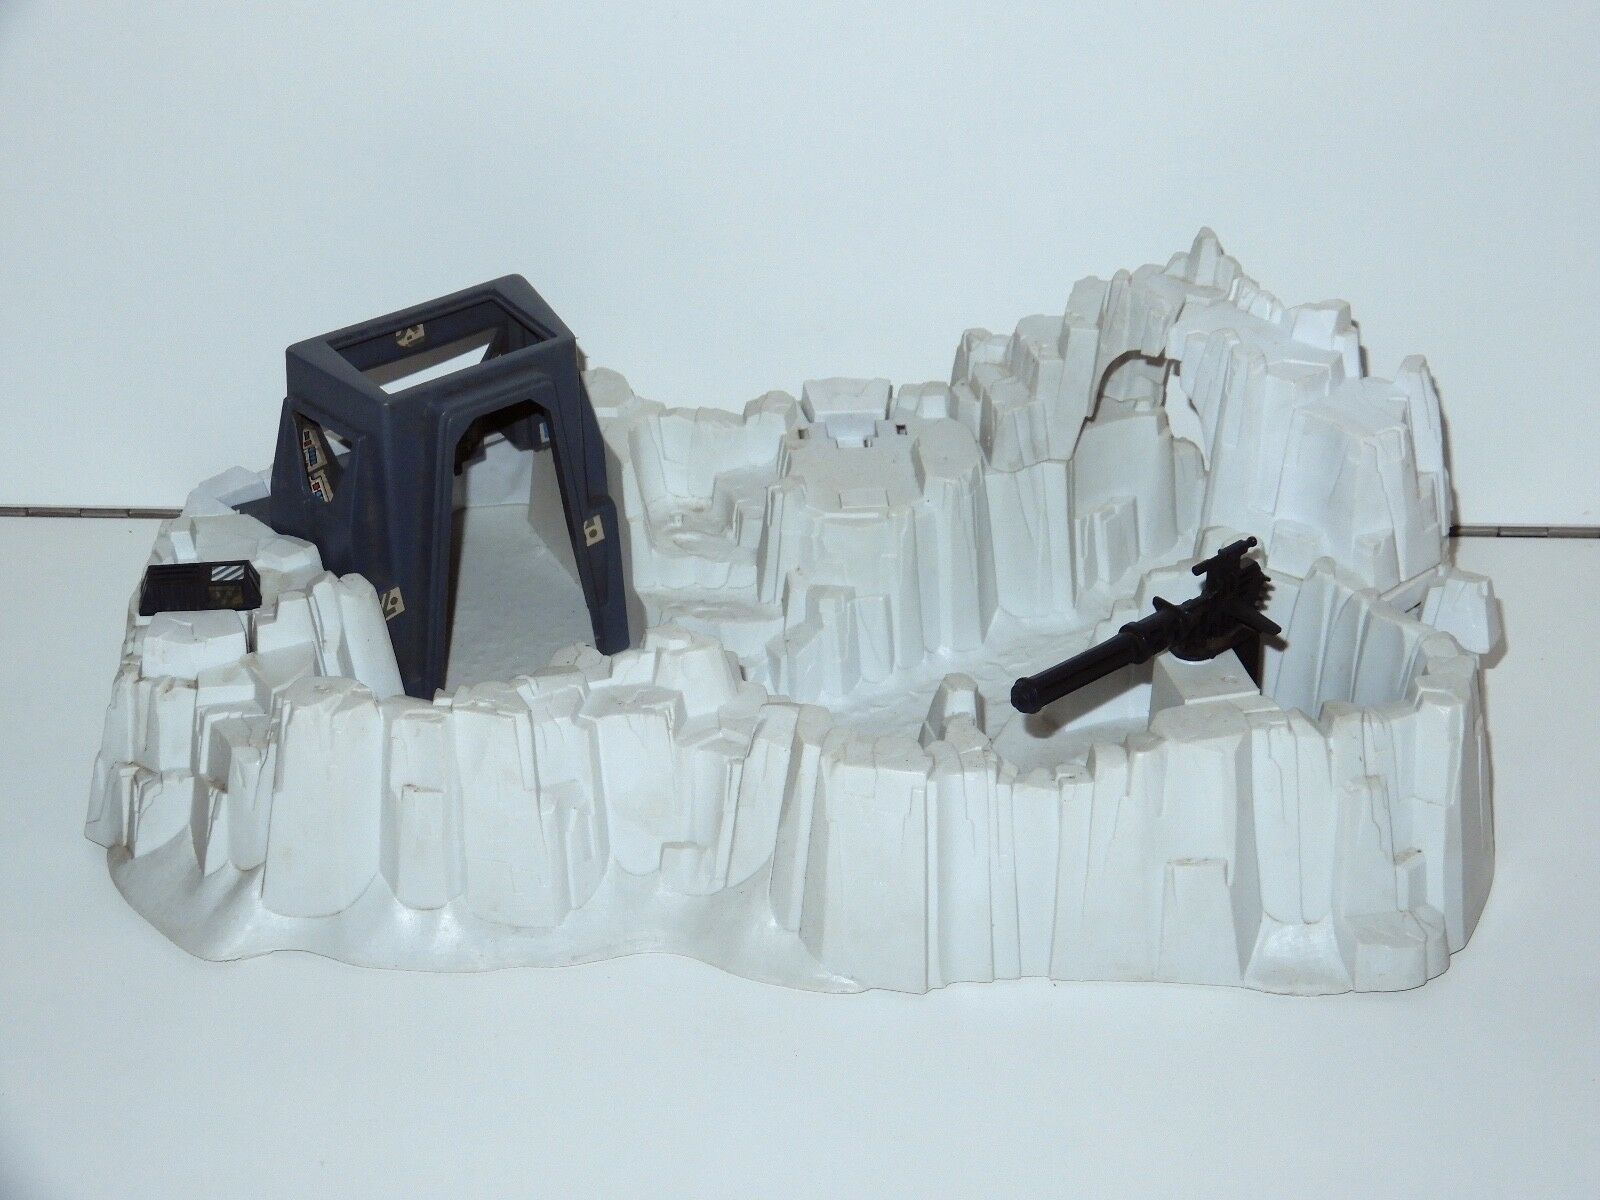 STAR WARS KENNER KENNER KENNER PLAYSET 1980 ESB IMPERIAL ATTACK BASE NEAR COMPLETE a16591